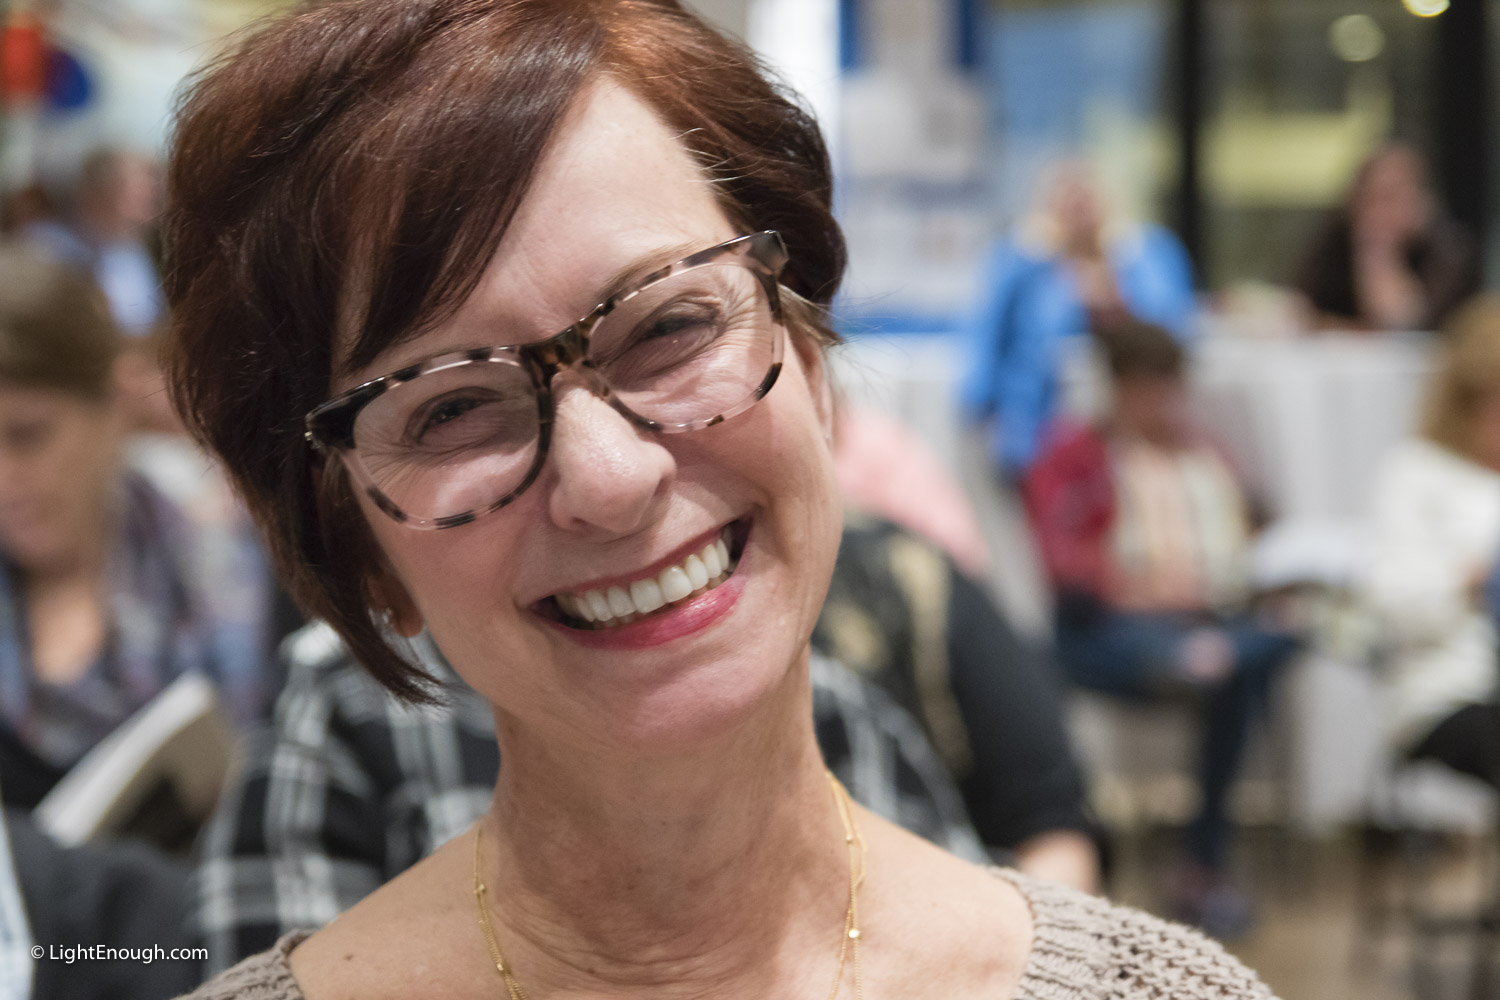 Pat Bodnar, All happy smiles at the UUCA Auction November 5, 2016. Photo by John St Hilaire / www.lightenough.com